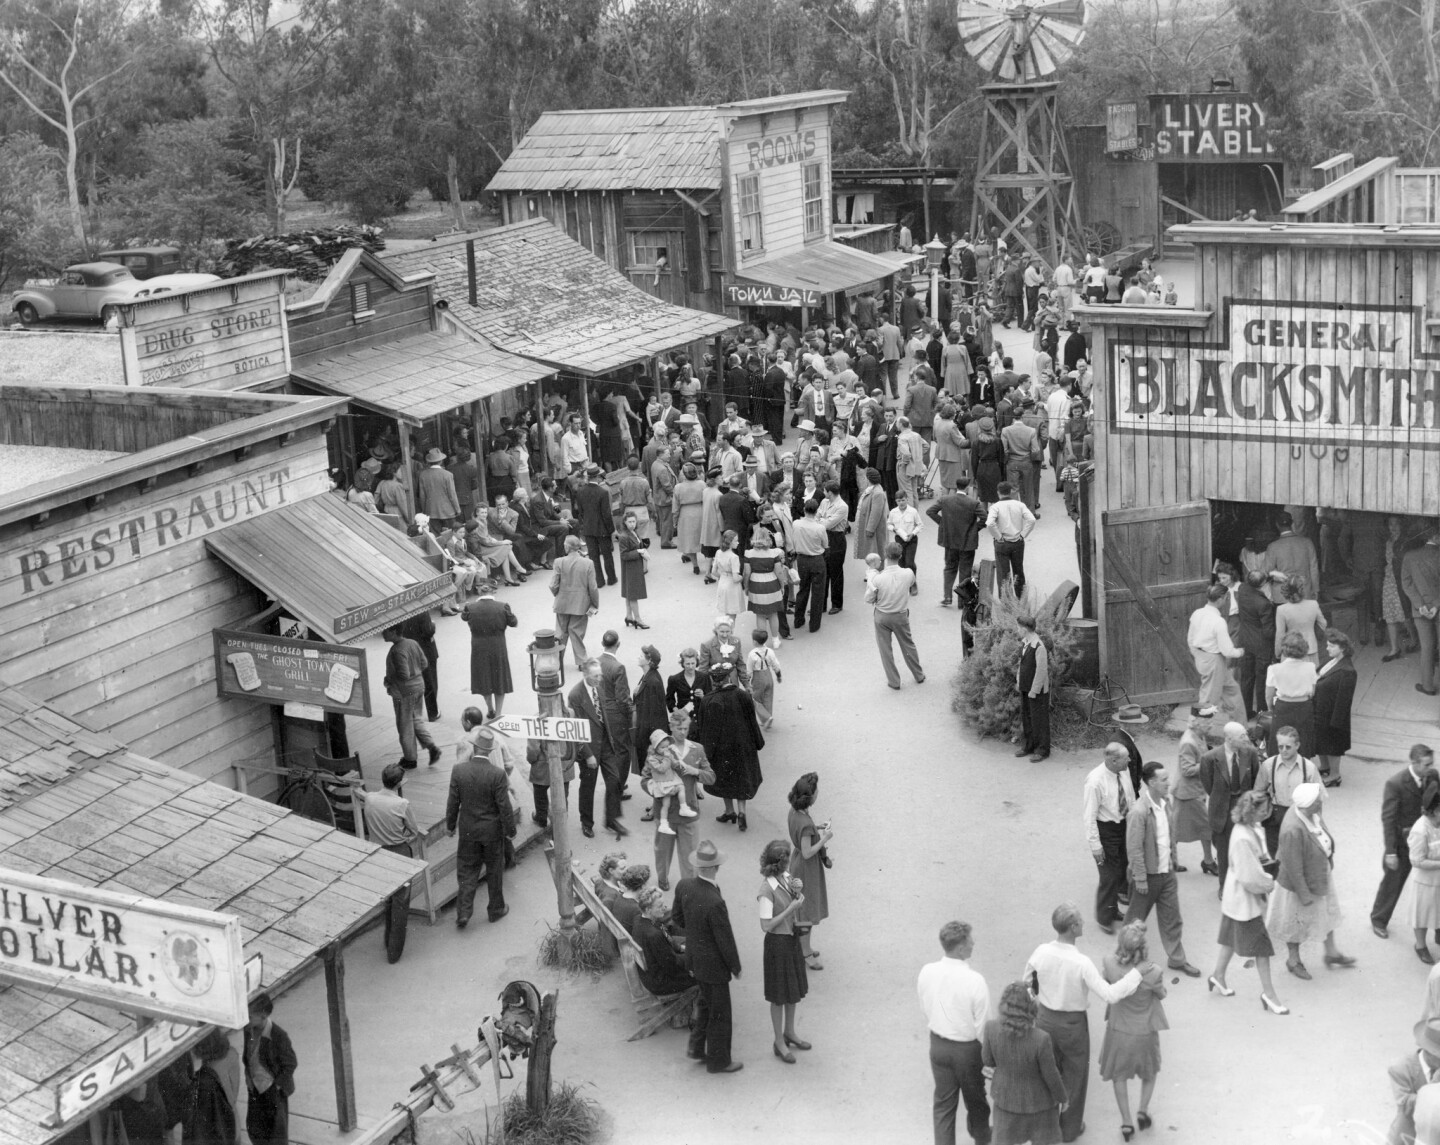 Ghost Town, Knott's Berry Farm, 1940s